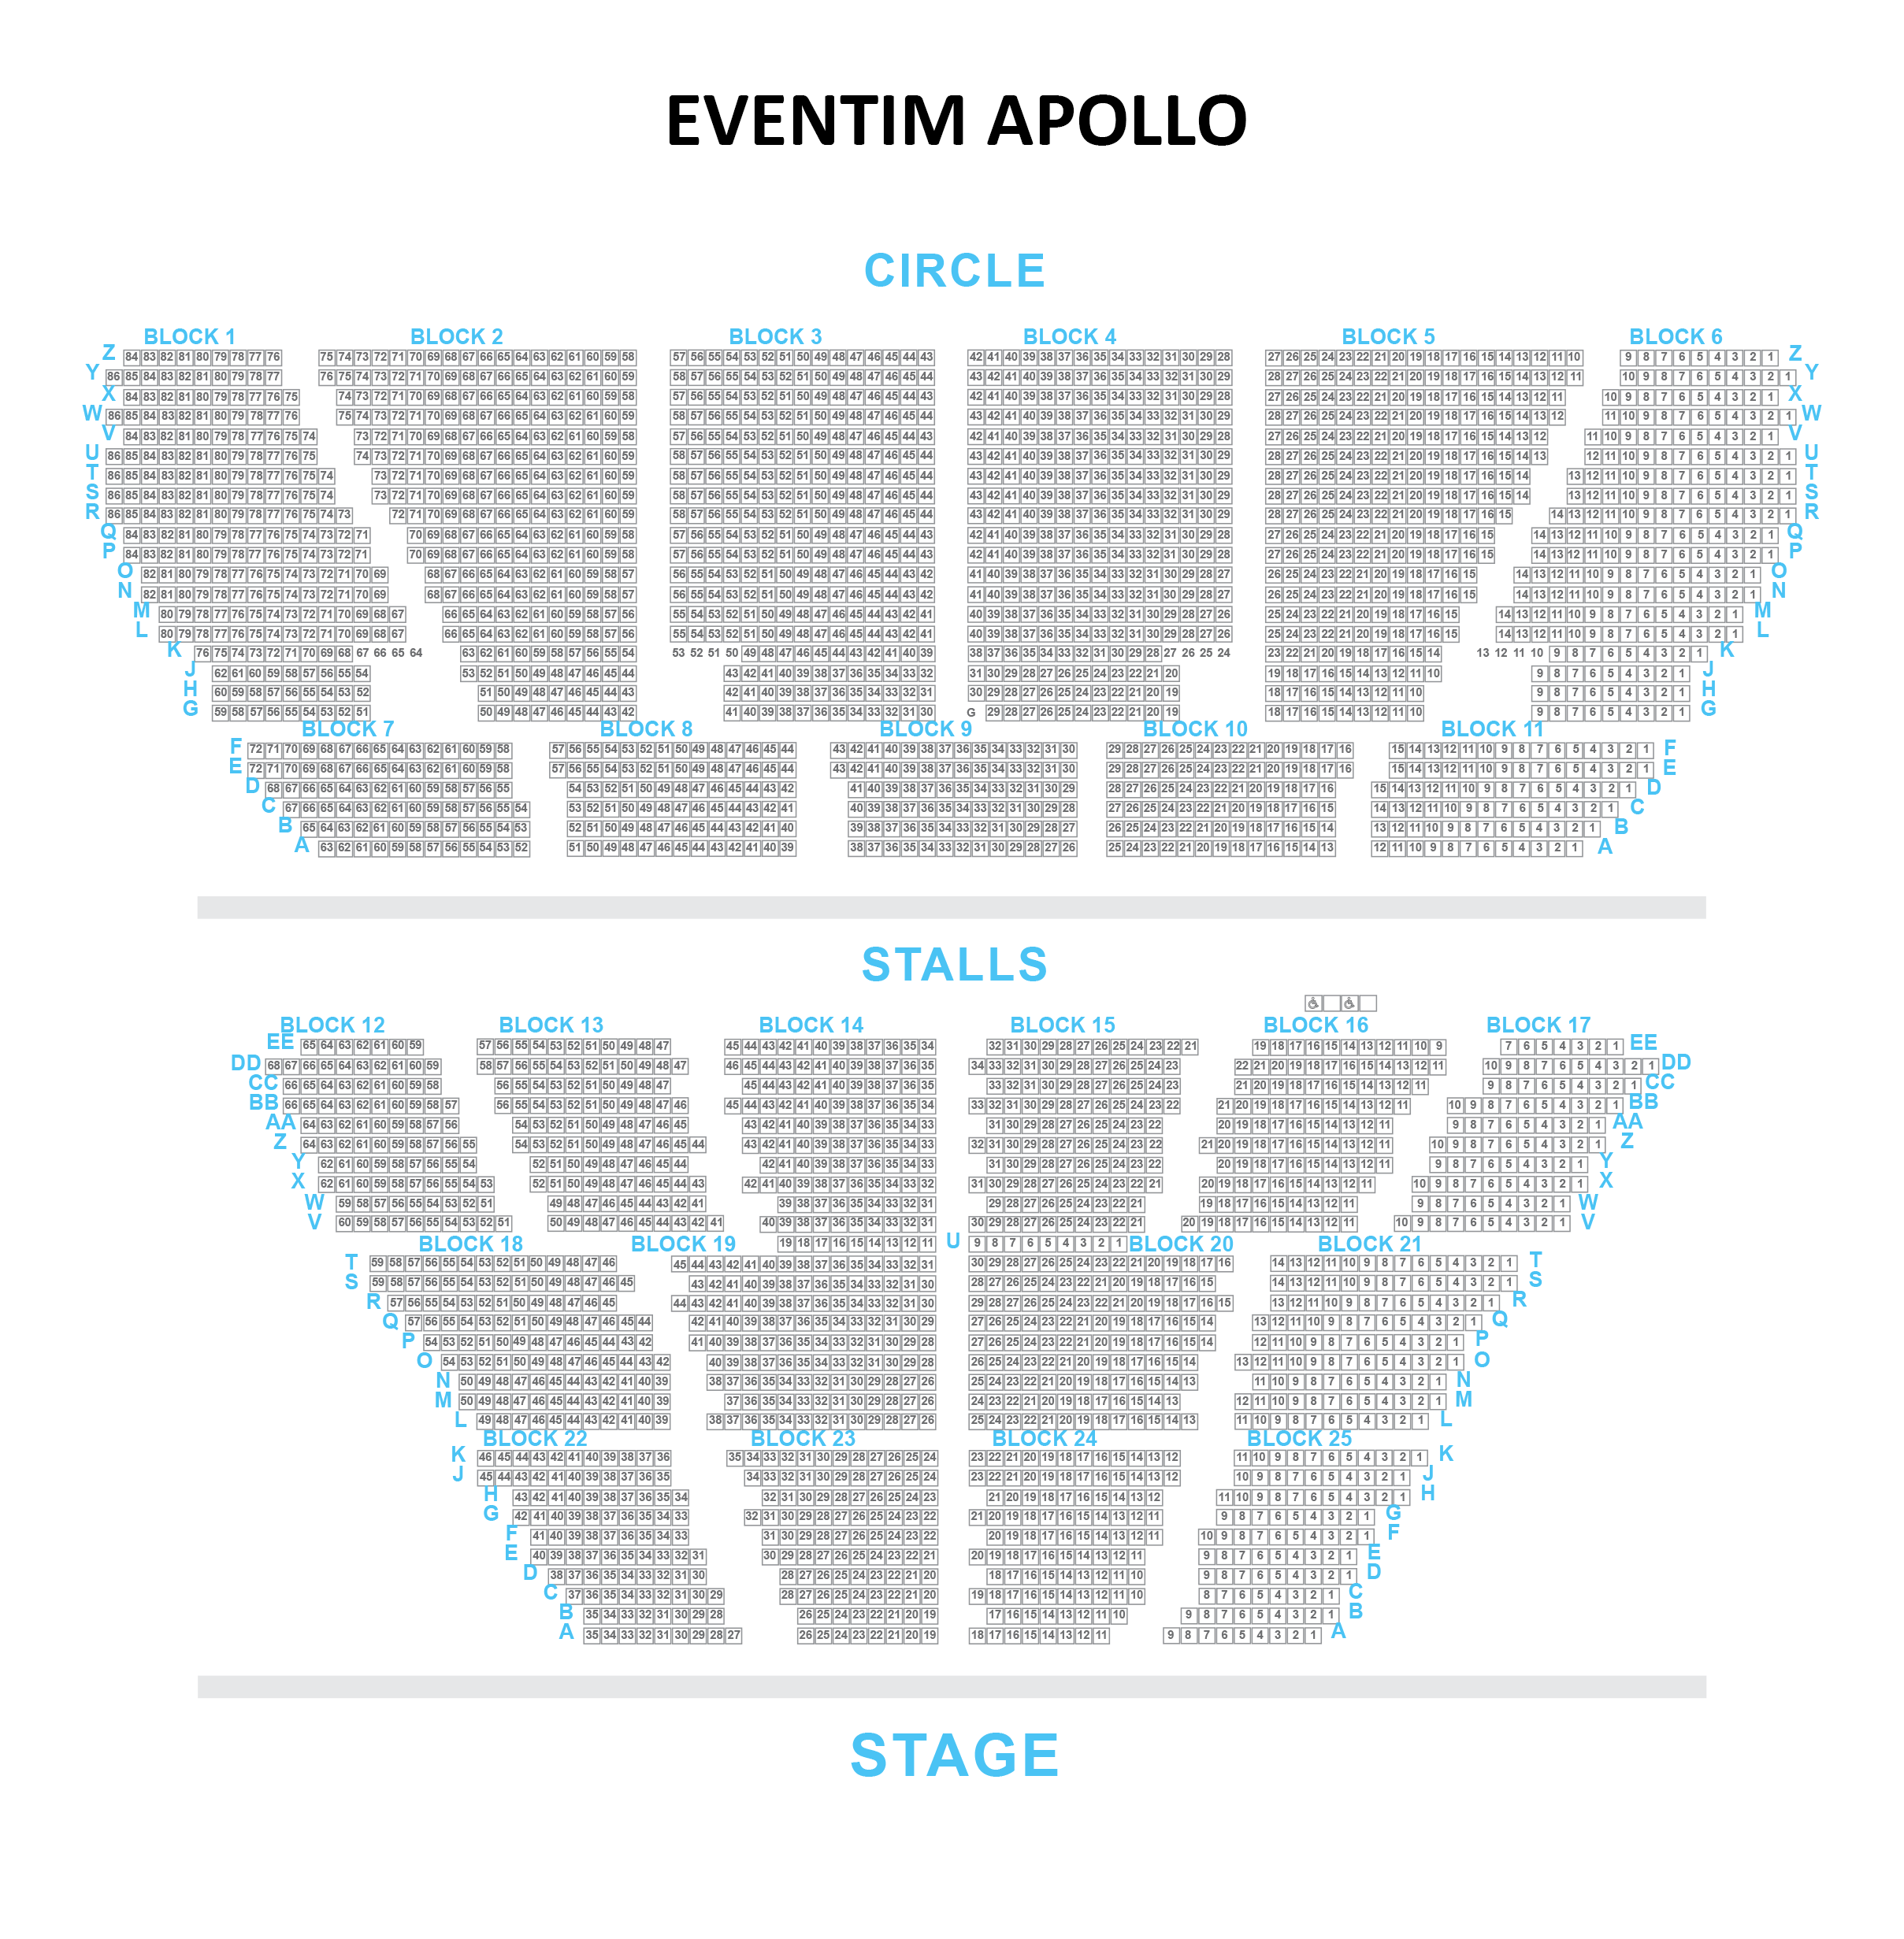 Eventim Apollo Seating Plan